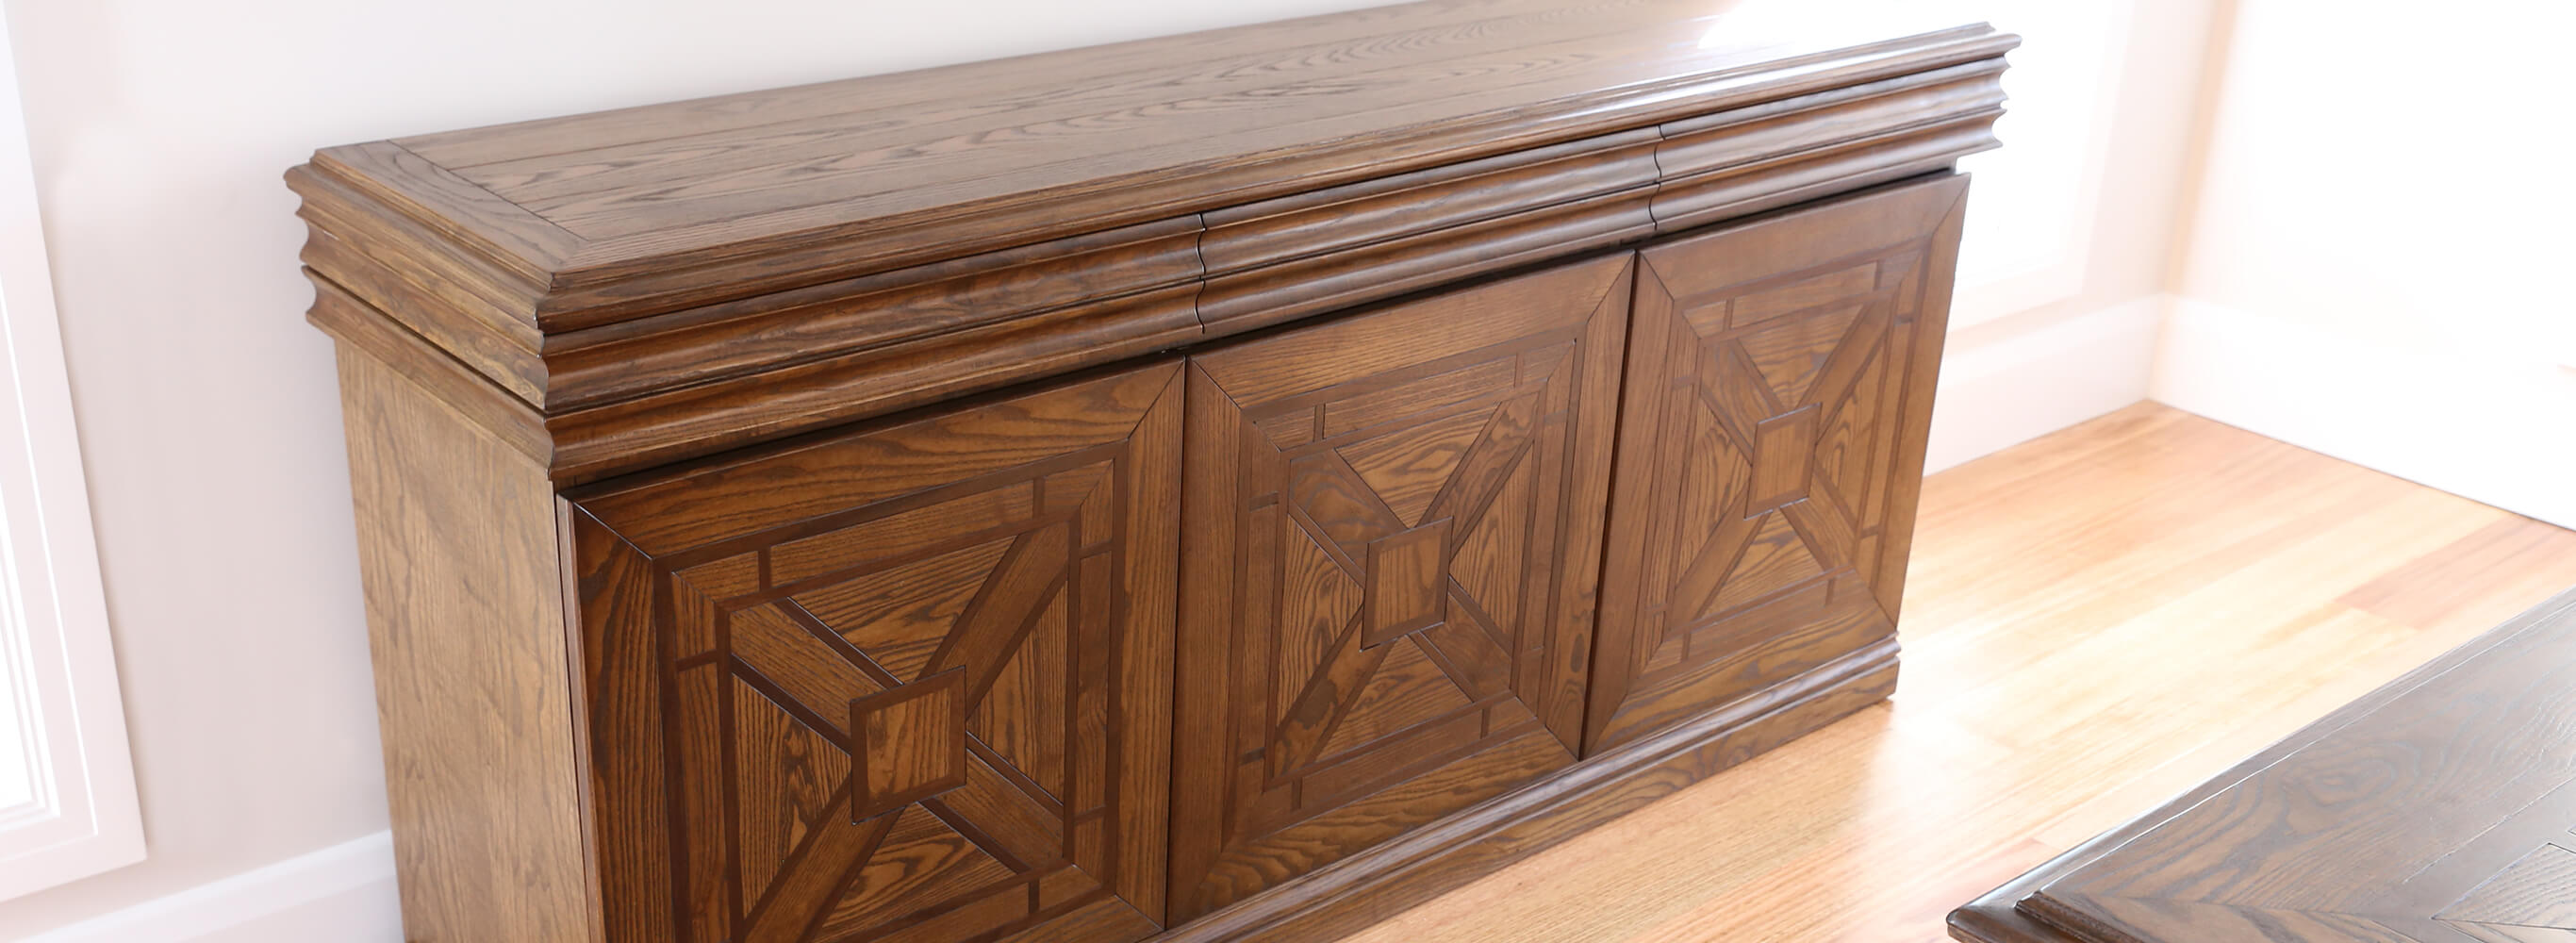 FrenchTables_Cabinet_banner